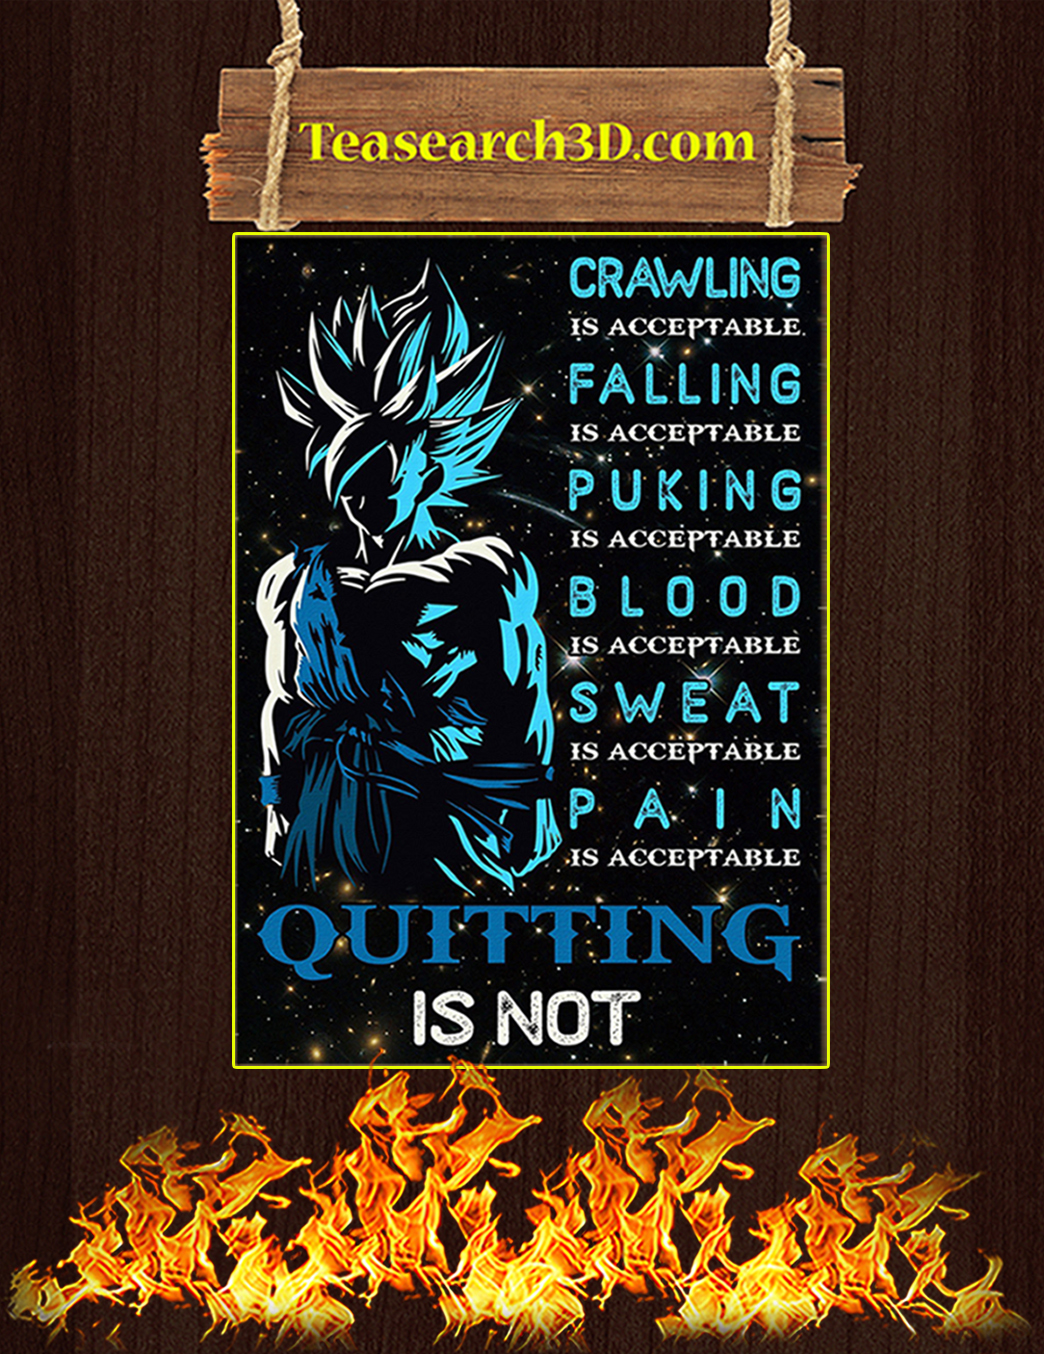 Quitting is not goku dragon ball poster A1